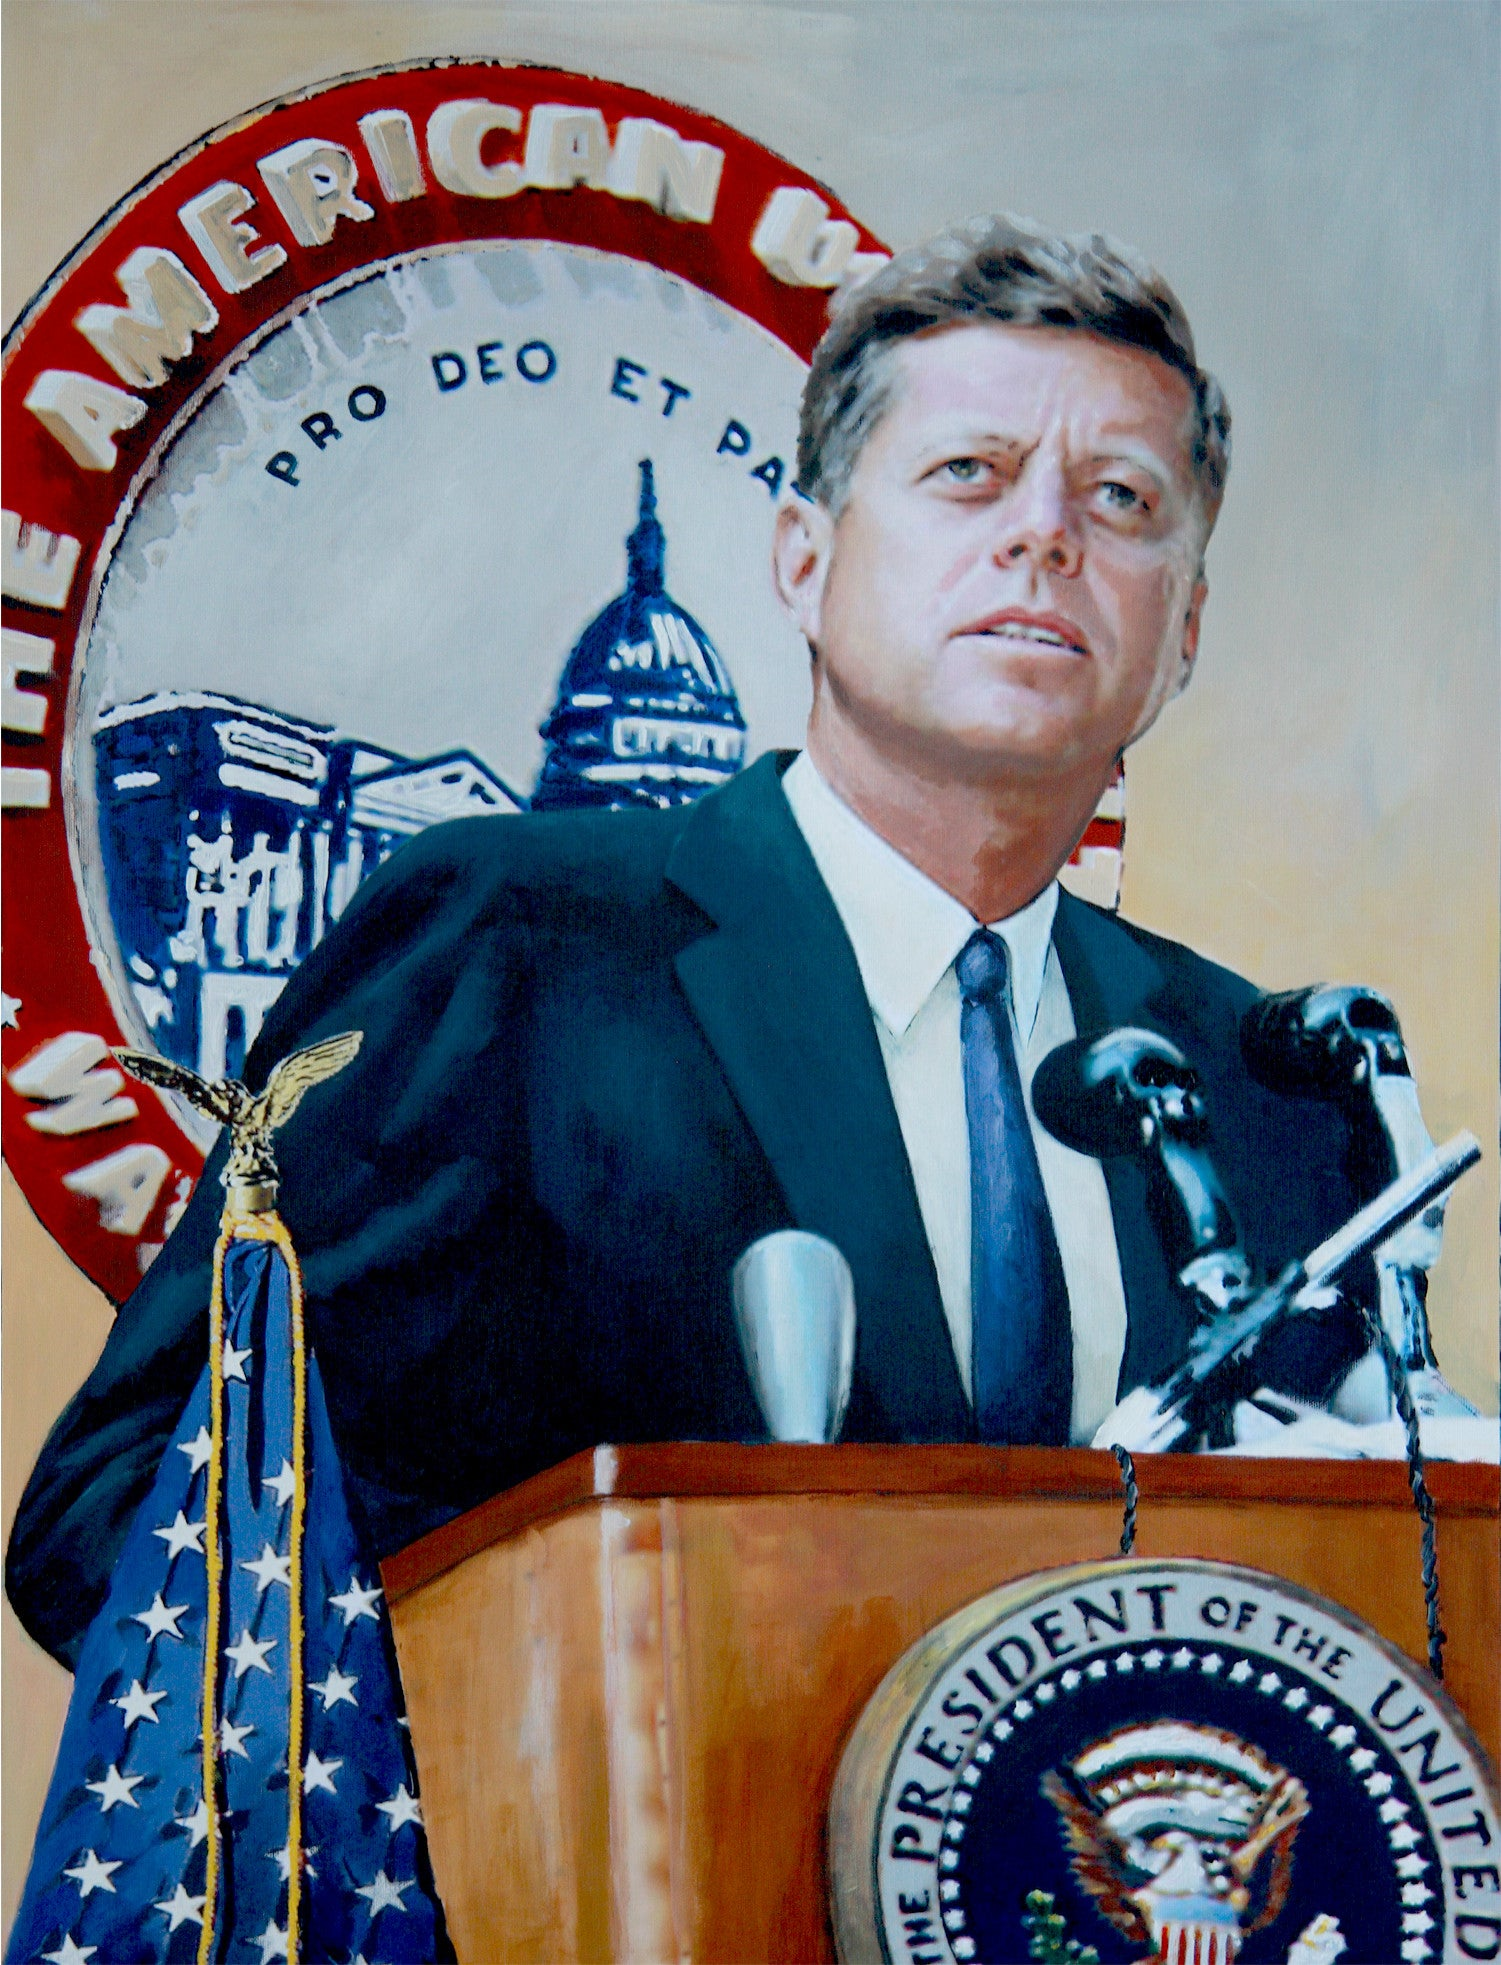 John F. Kennedy delivers his Strategy of Peace address. 1963 by artist Trevor Goring